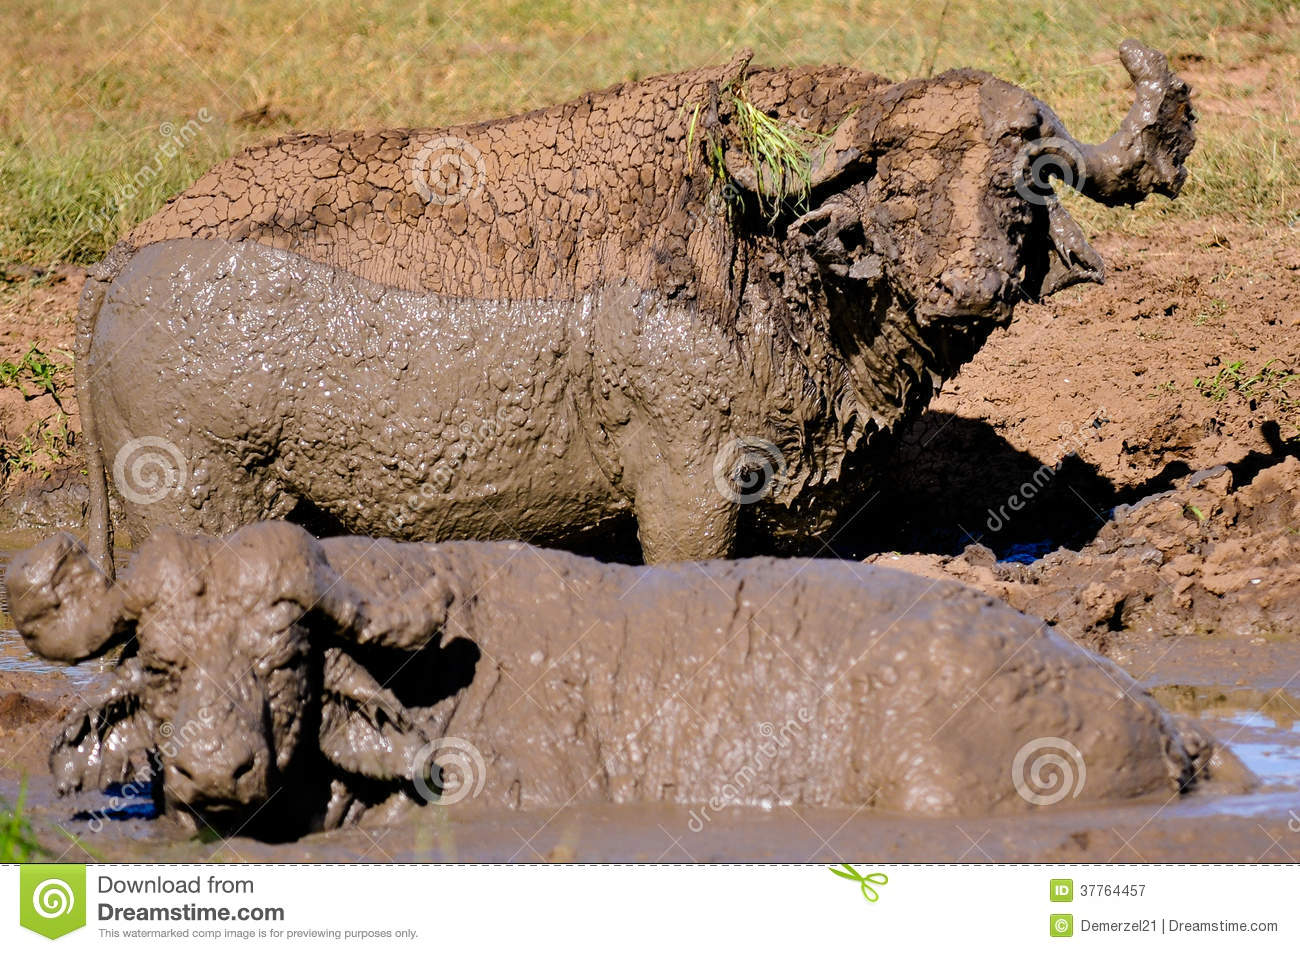 A Pair of Water Buffalo in the Mud